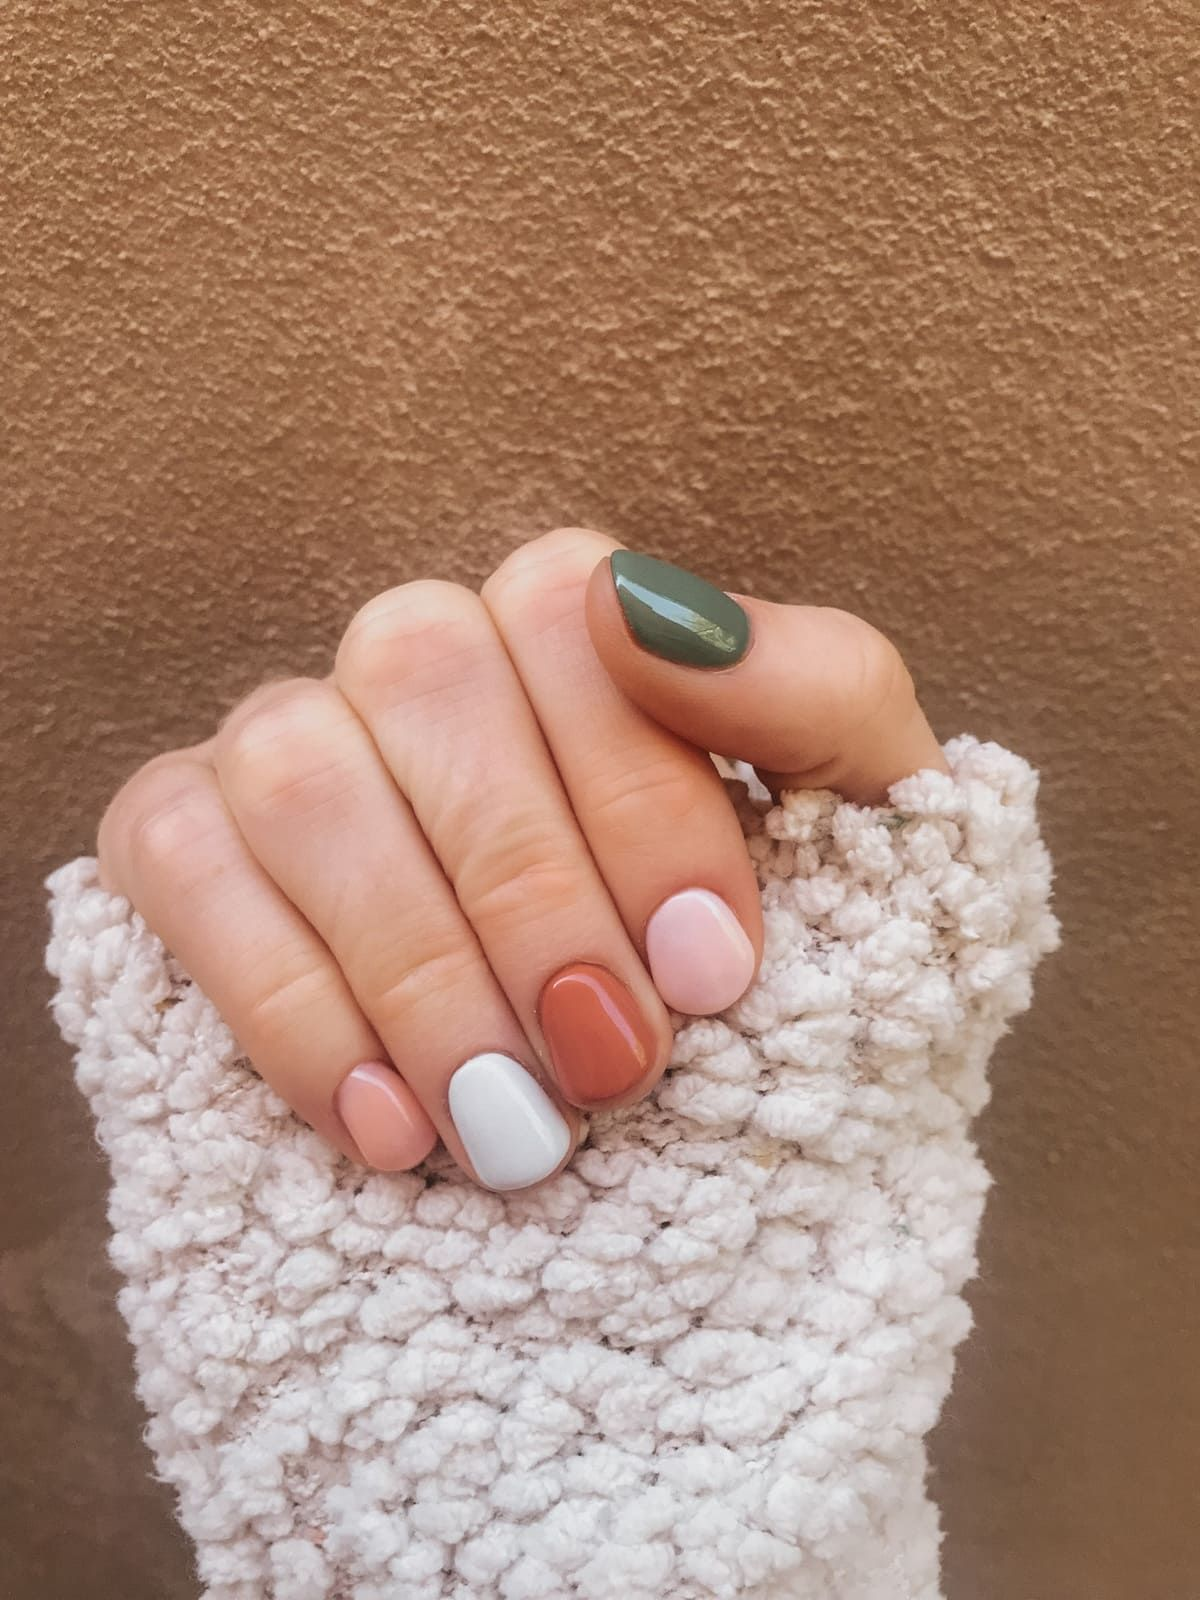 Fall nails roundup: cute manicure ideas to try this season – mintarrow.com